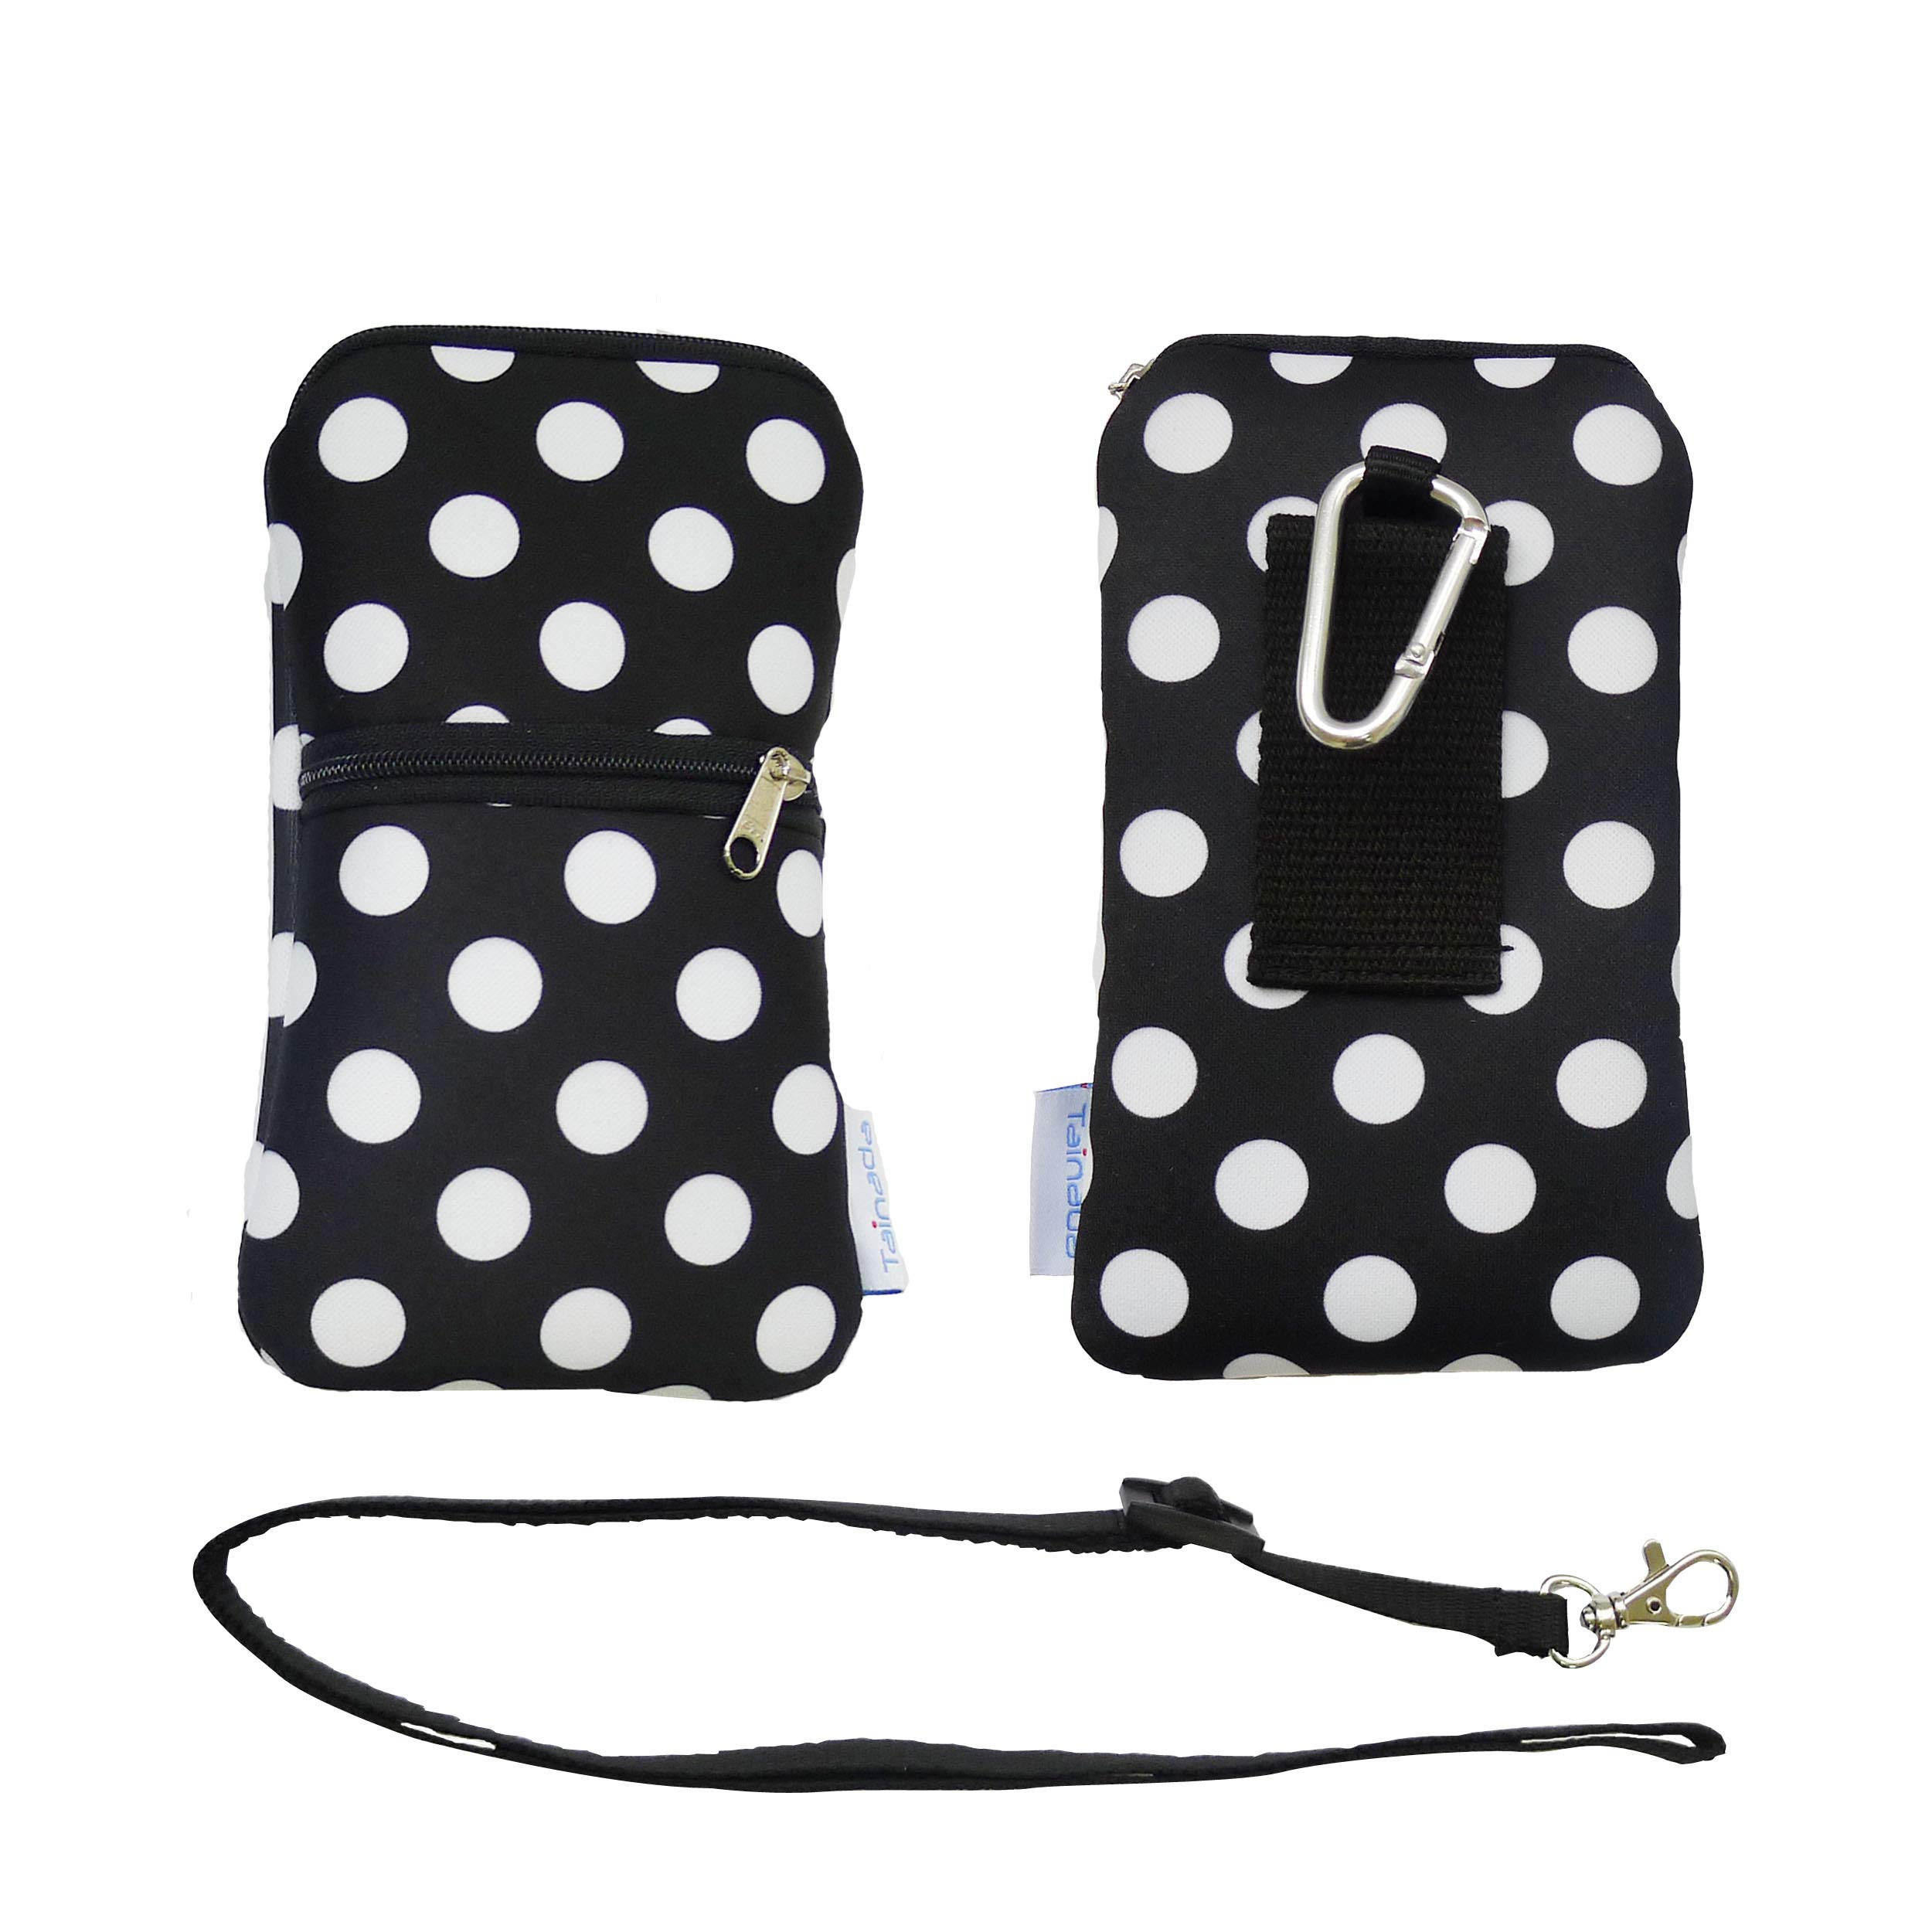 Tainada Women Neoprene Shockproof Dual Zippered Sleeve Phone Pouch with Carabiner, Neck Lanyard Strap, Holster for iPhone XR, Xs, Samsung S10+, Note 10, Google Pixel 3, 3a XL. (Polka Dots Black) by Tainada